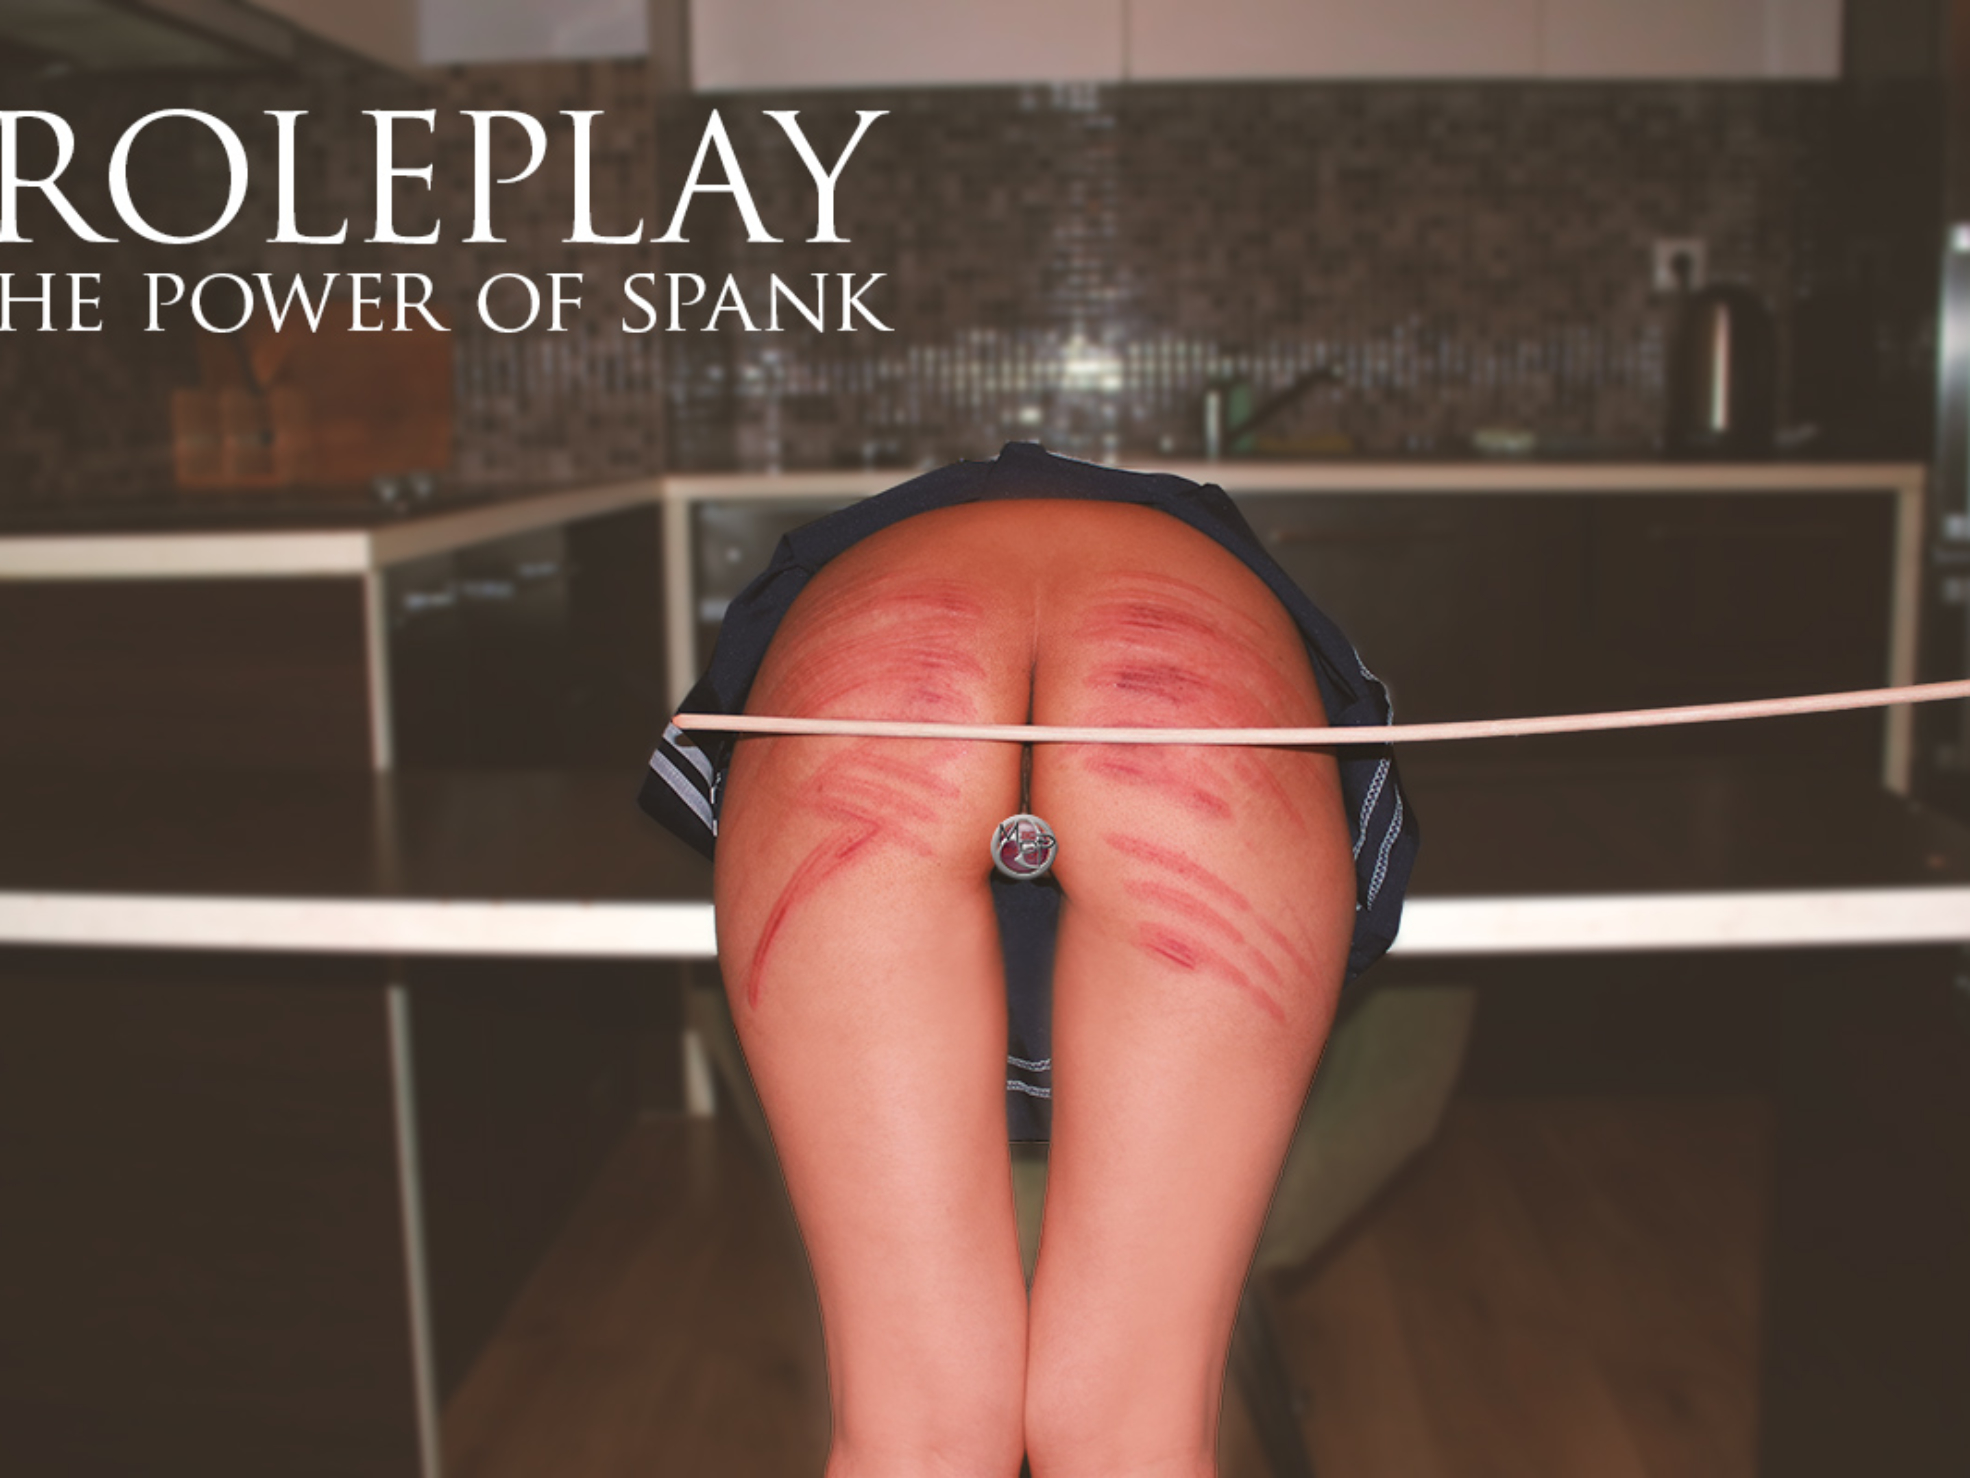 Roleplay Spank